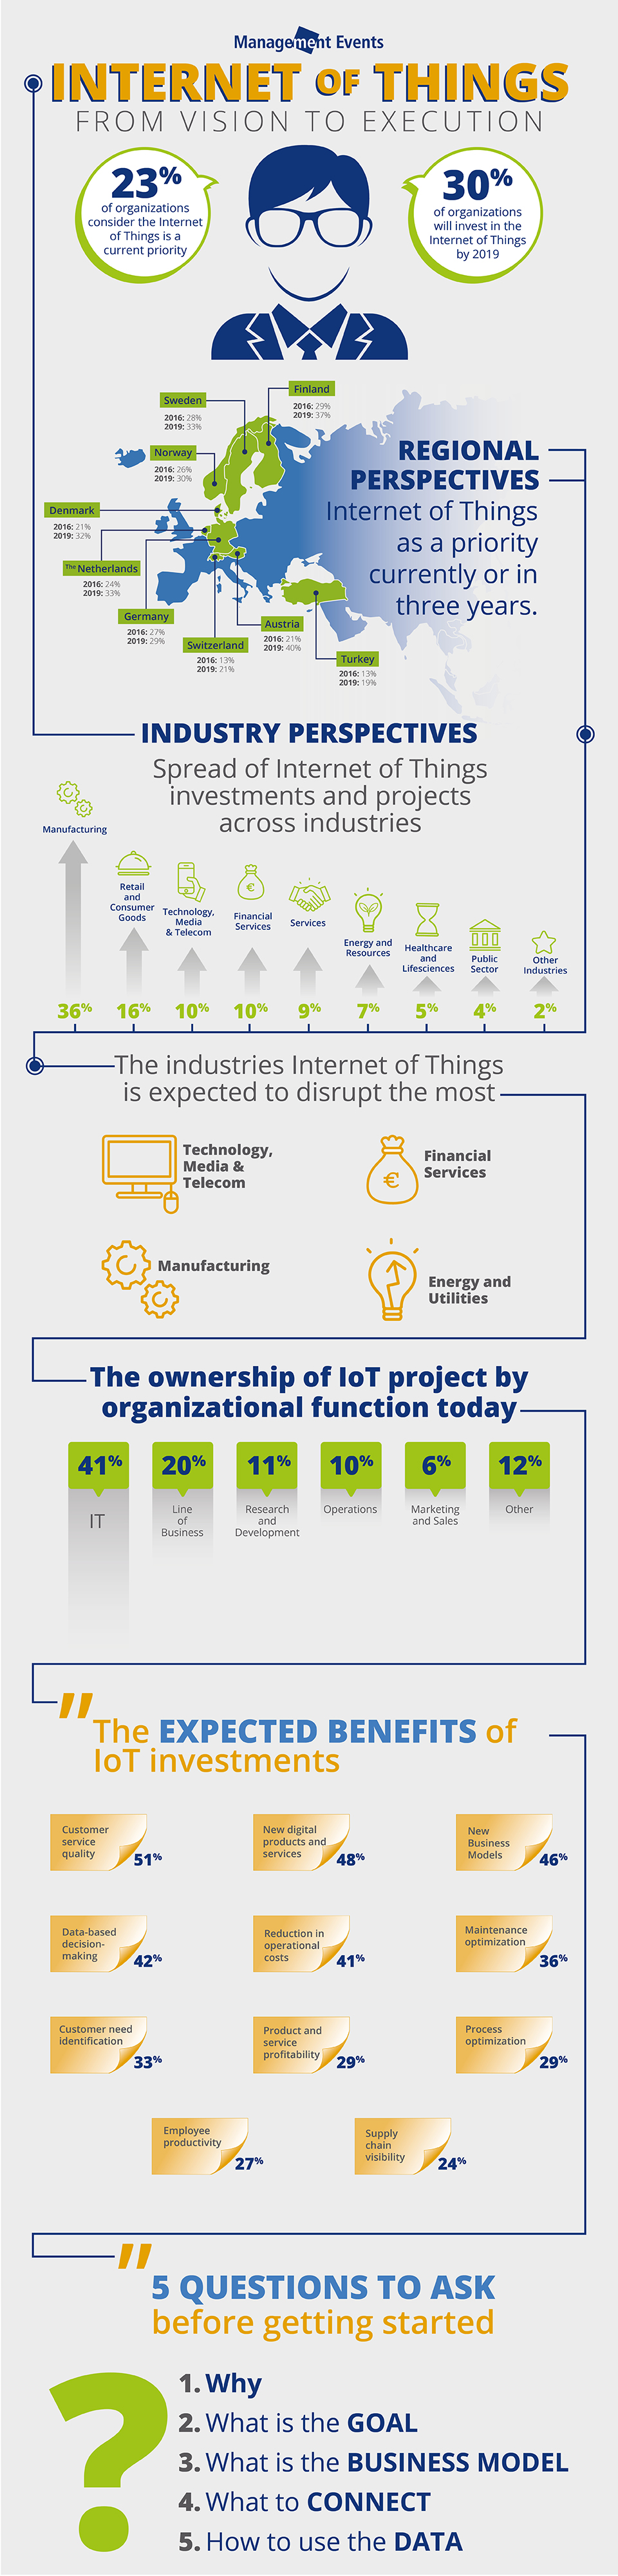 infographic-internet-of-things-from-vision-to-execution